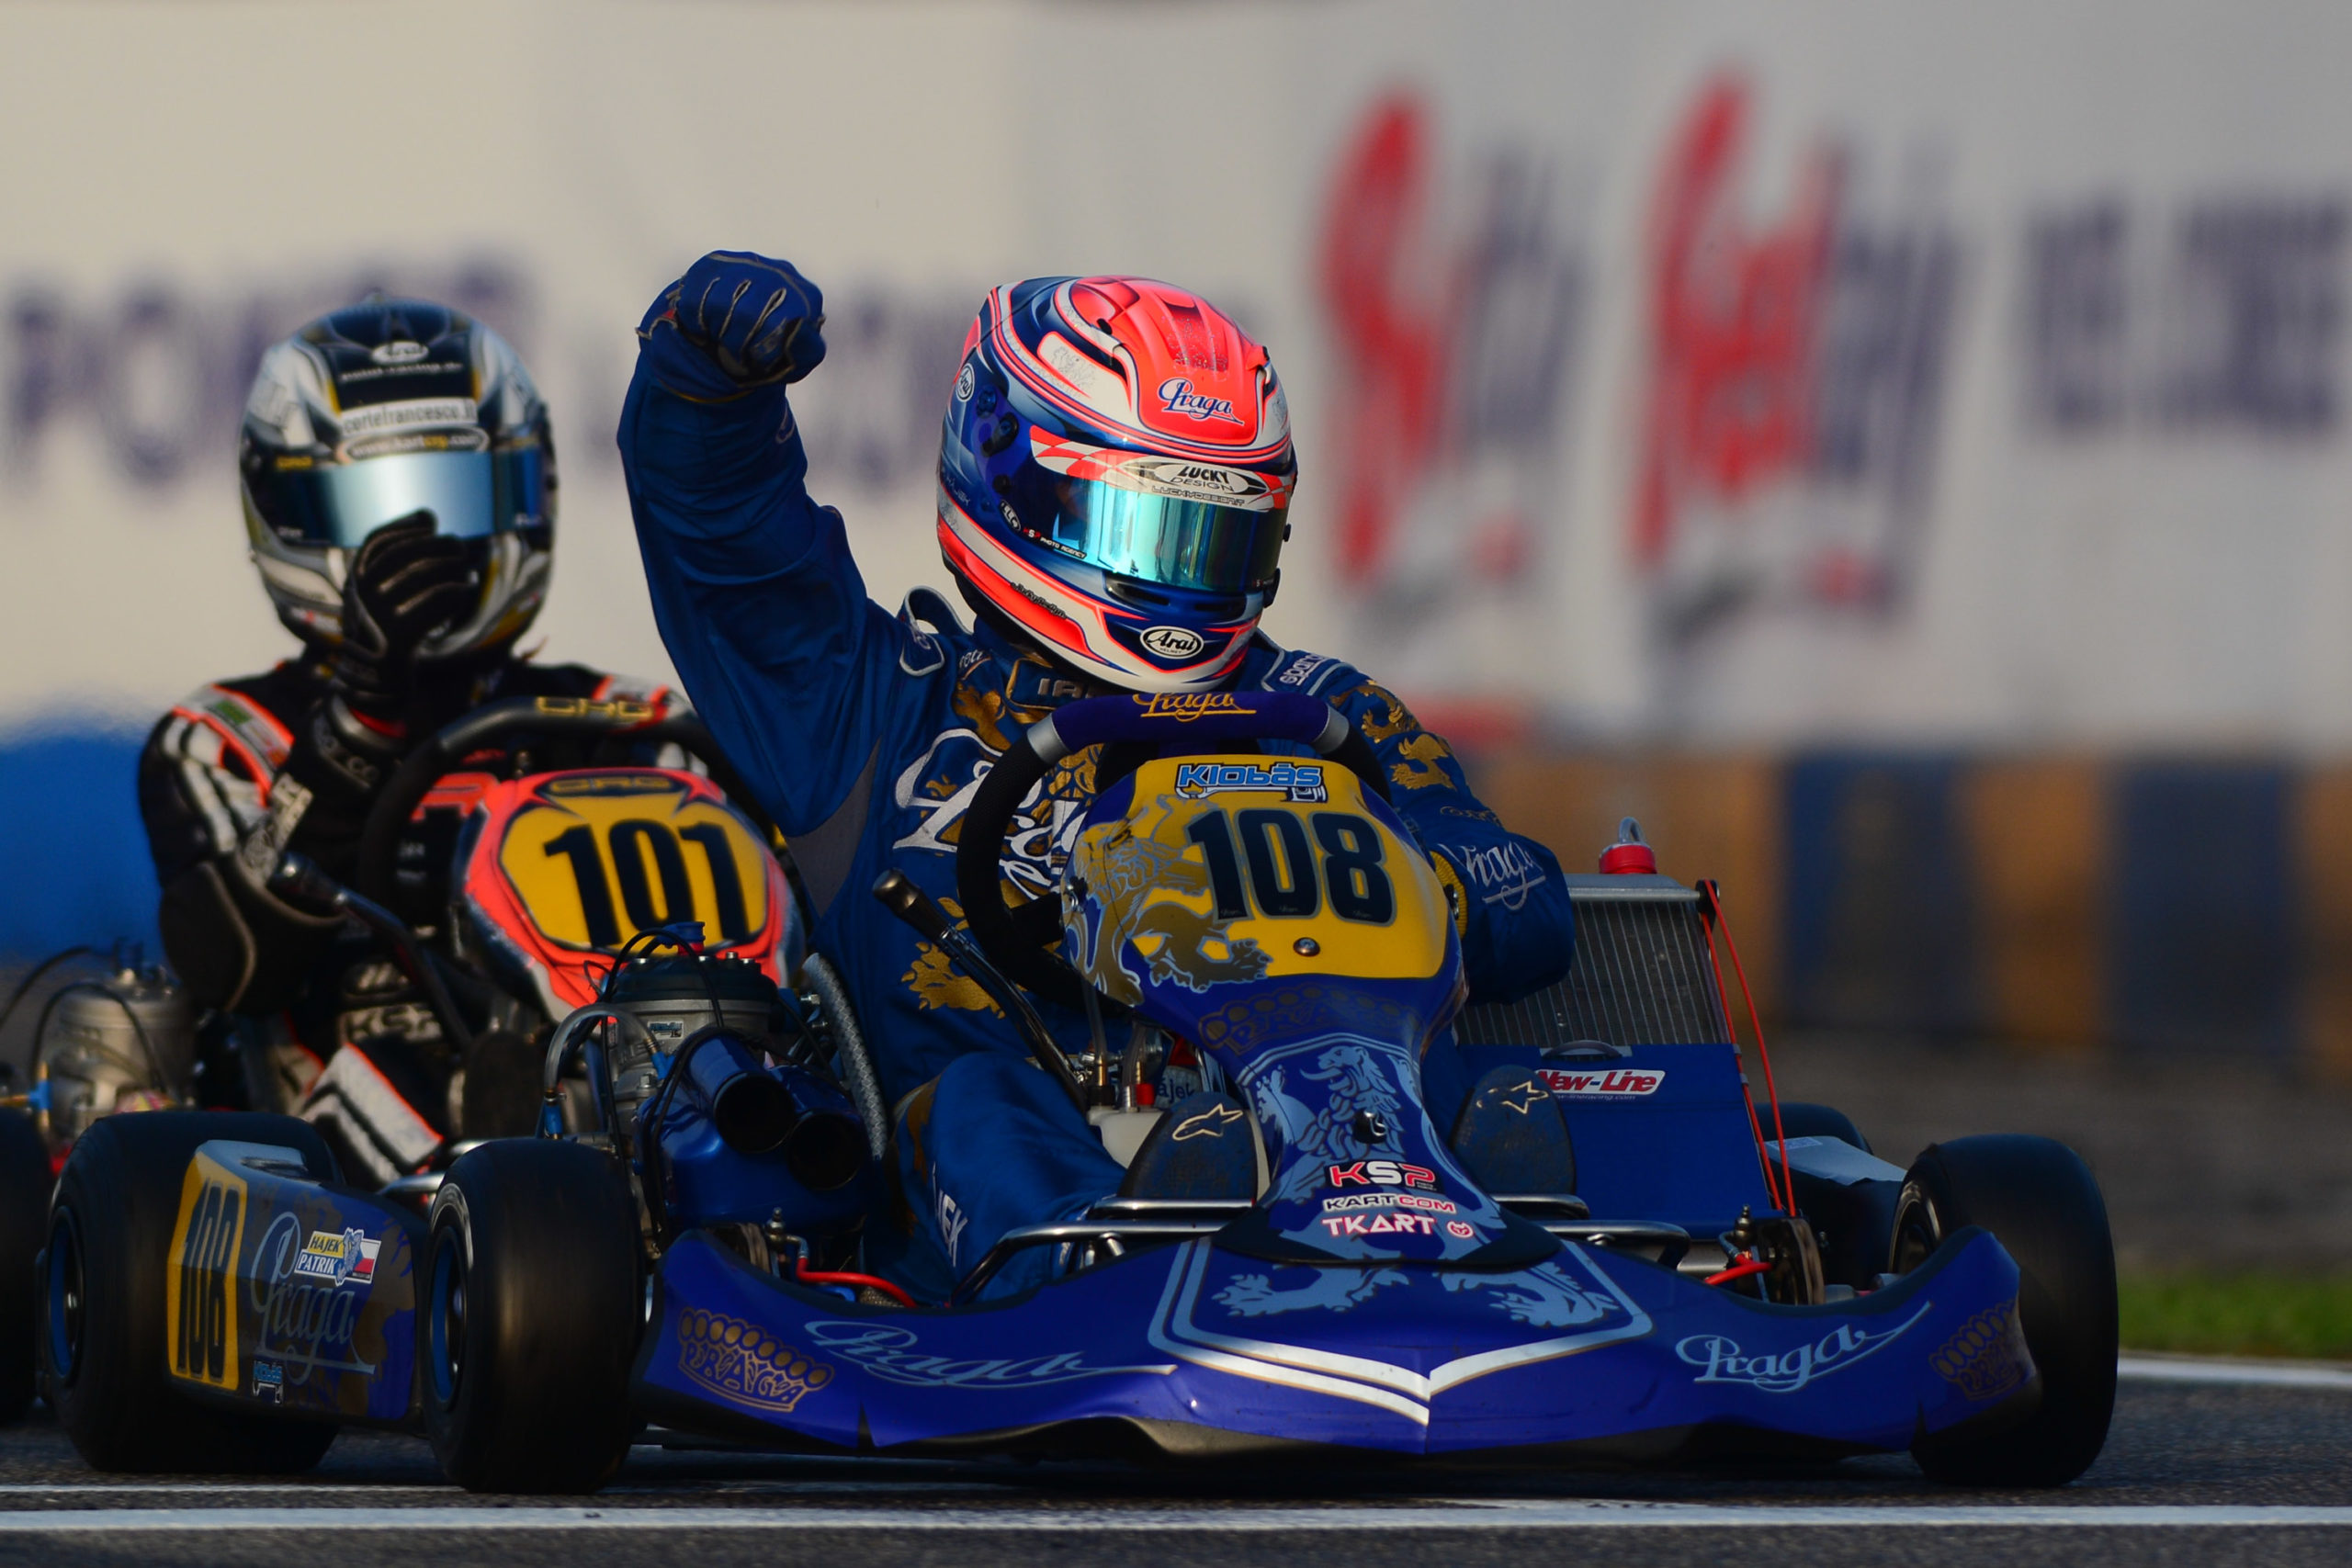 PRAGA KART RACING WINS IN KZ2